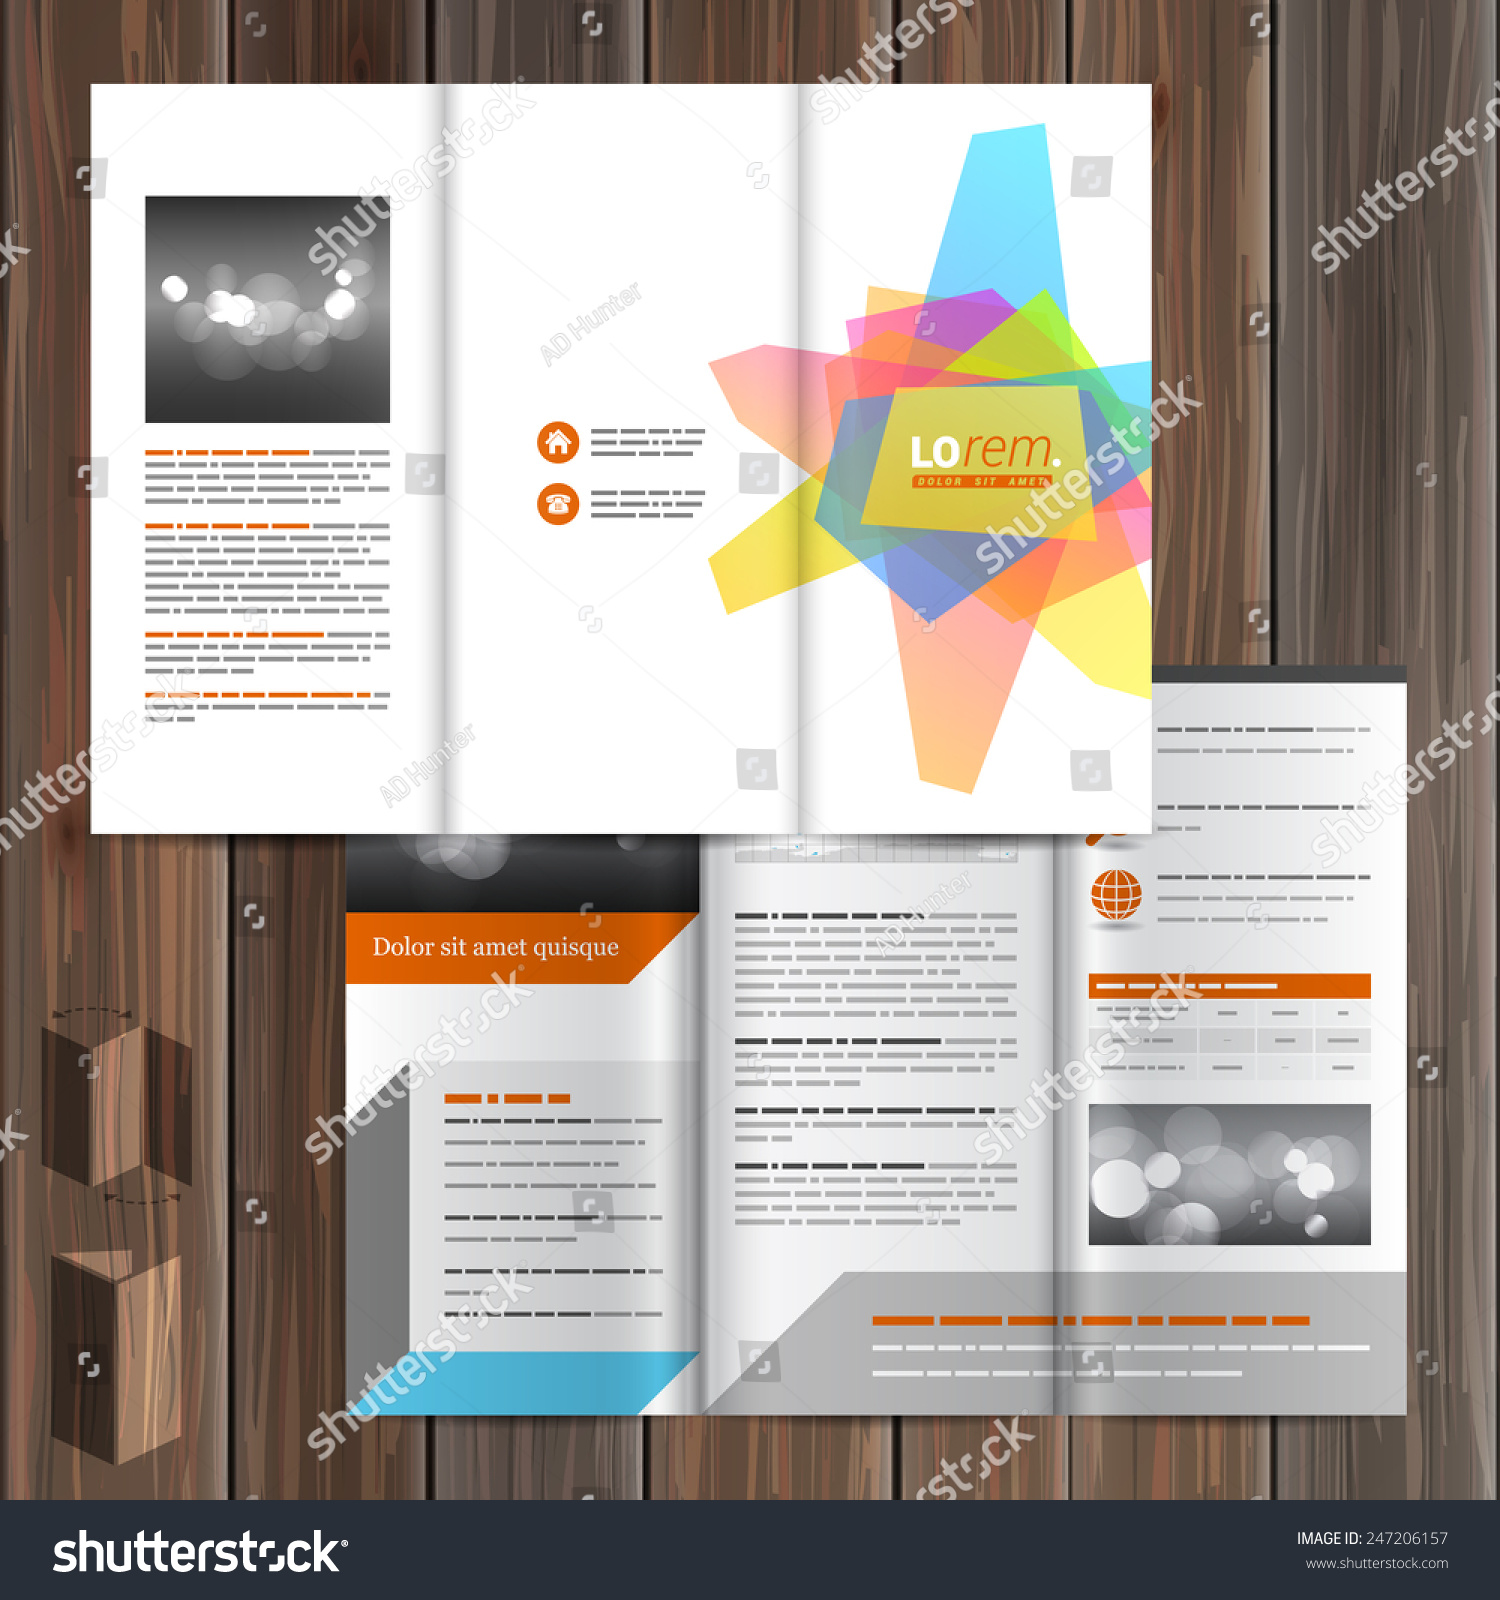 White Creative Brochure Template Design With Art Color Elements